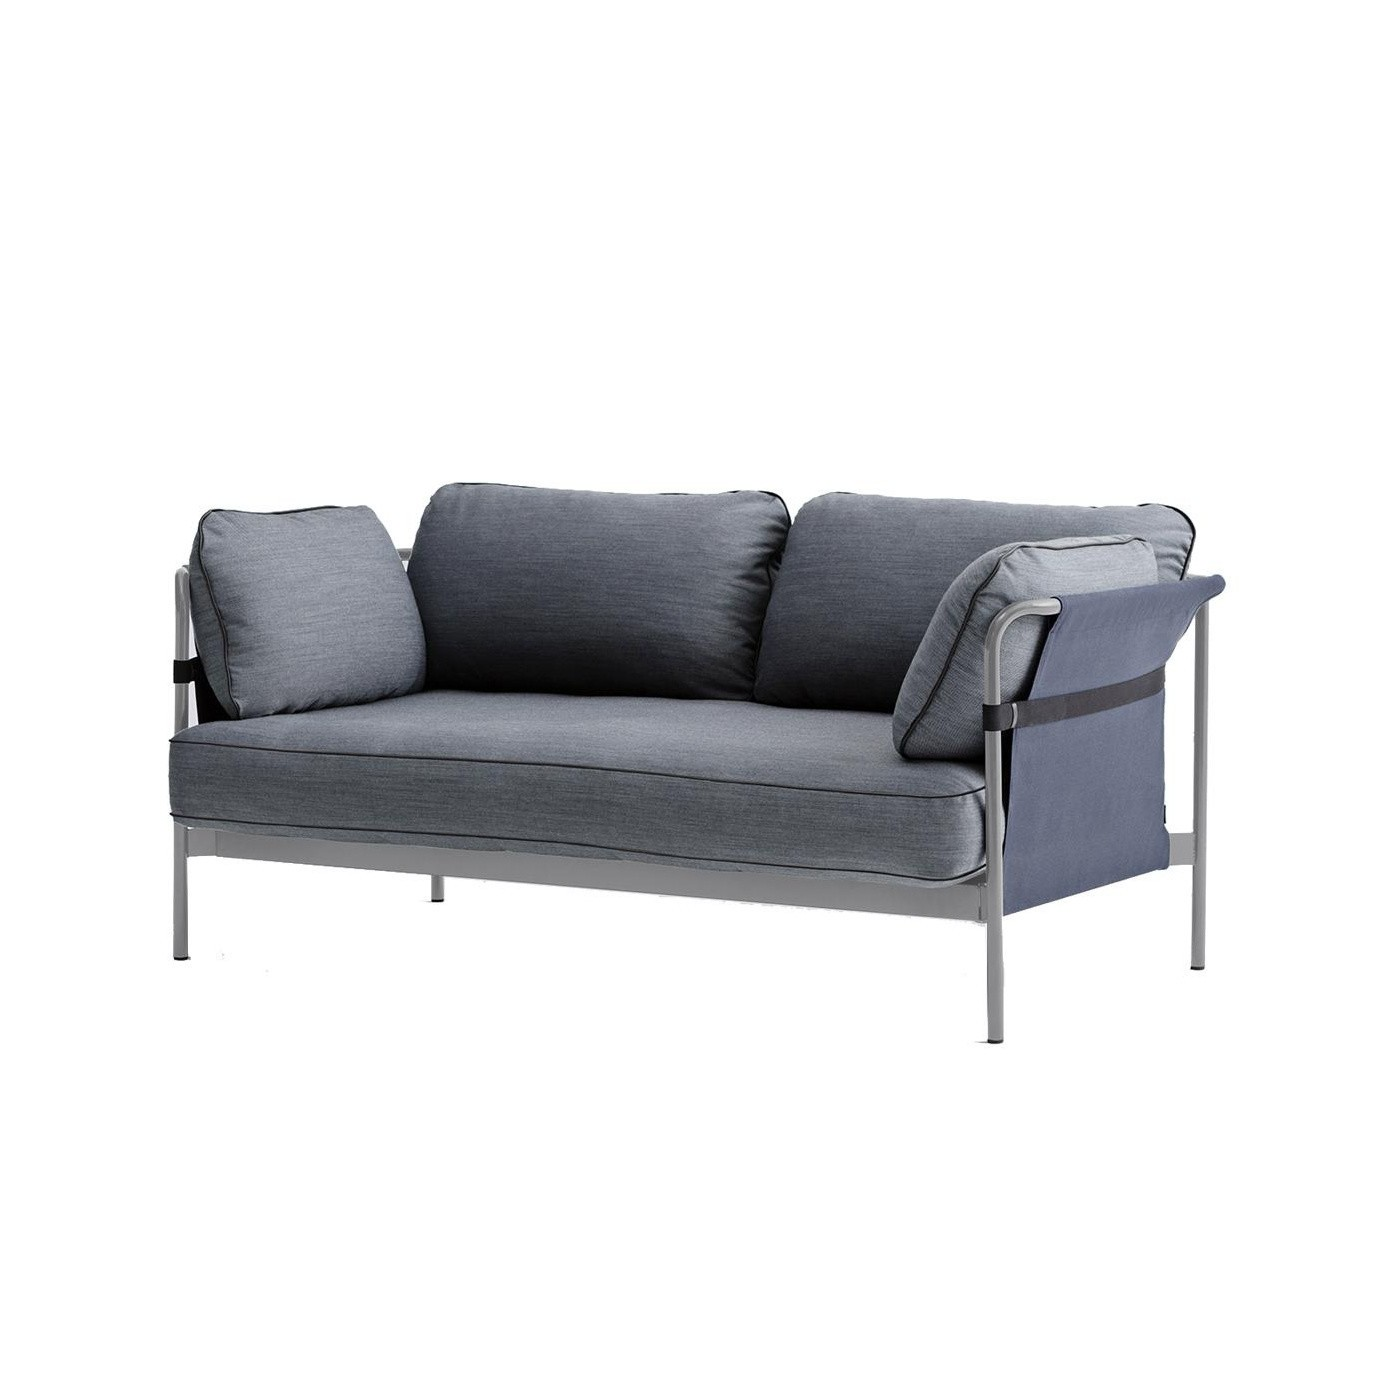 Hay Can 2 Seater Sofa Grey Blue Fabric Surface 990 172 4